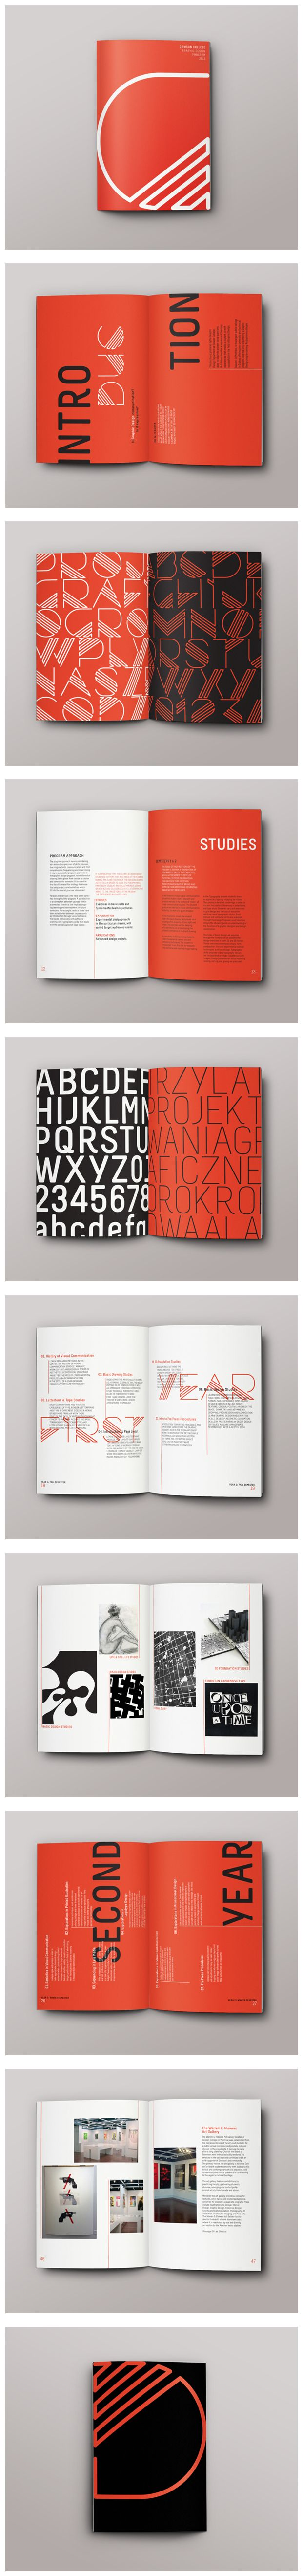 Maria Puché – Brochure for Dawson College graphic design program. Spring 2013